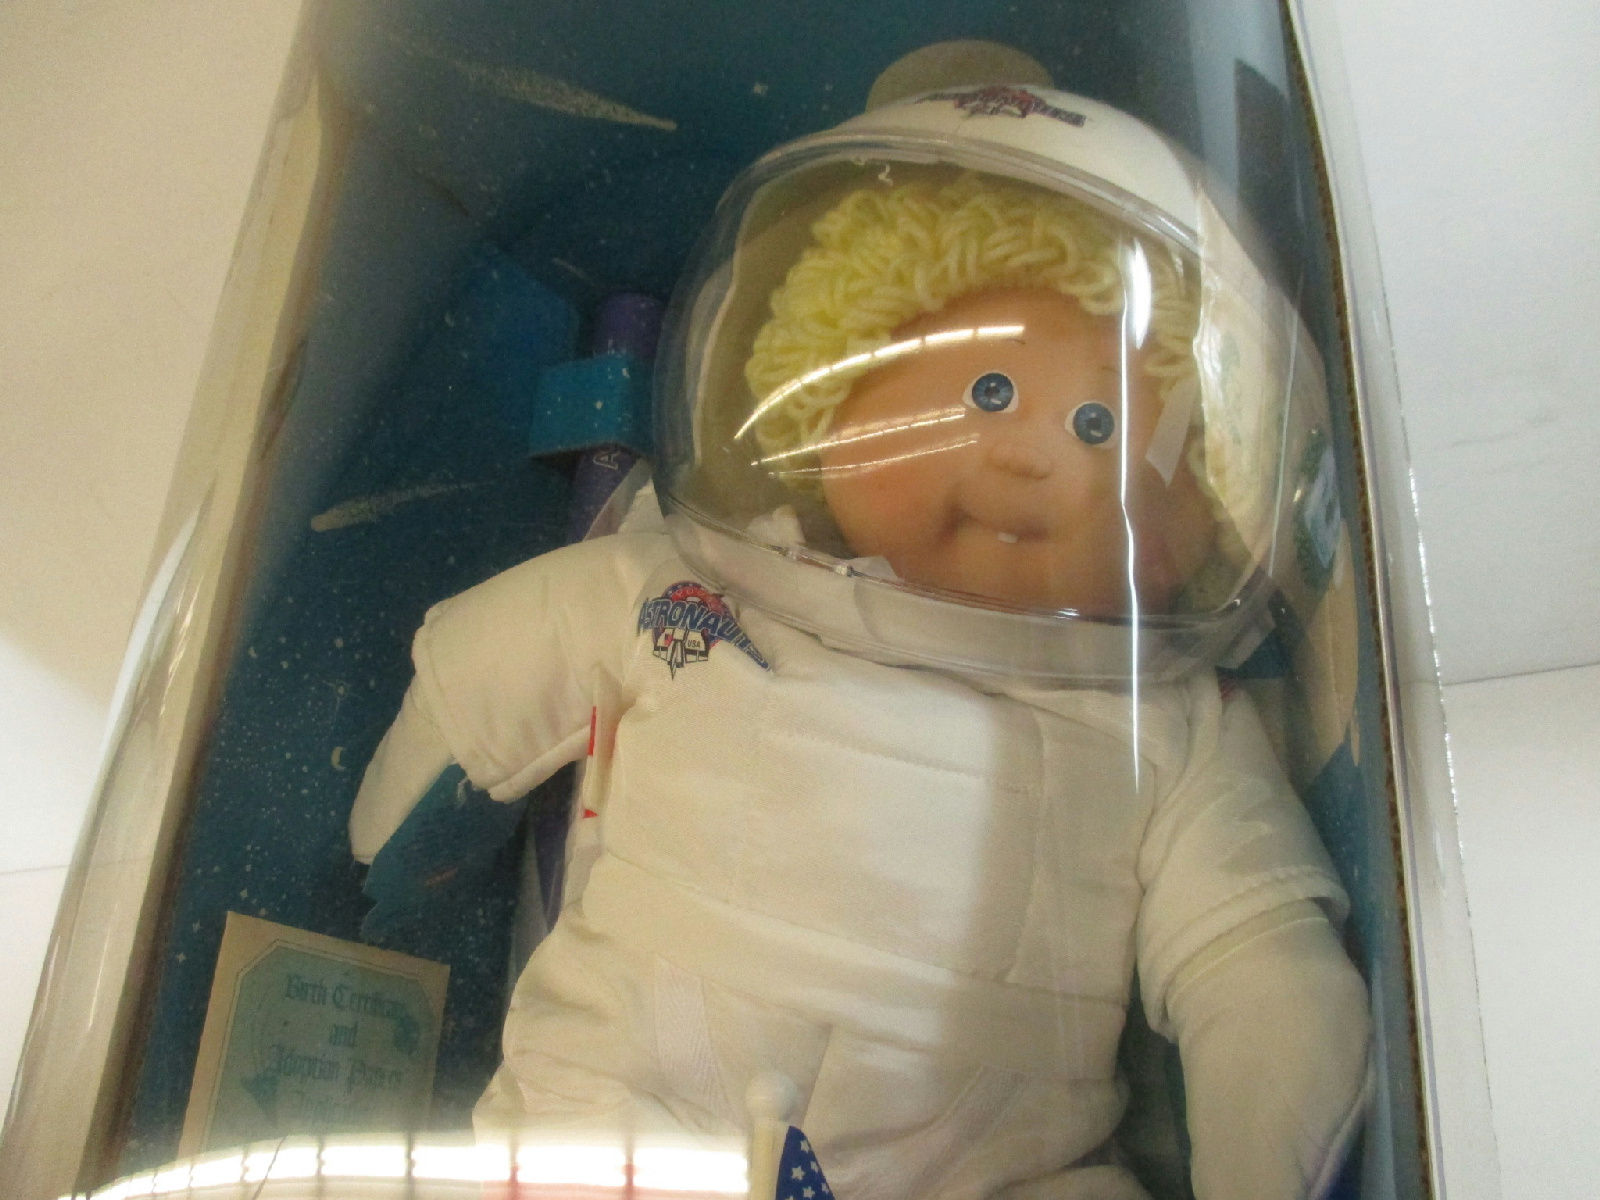 young astronauts cabbage patch doll - photo #27